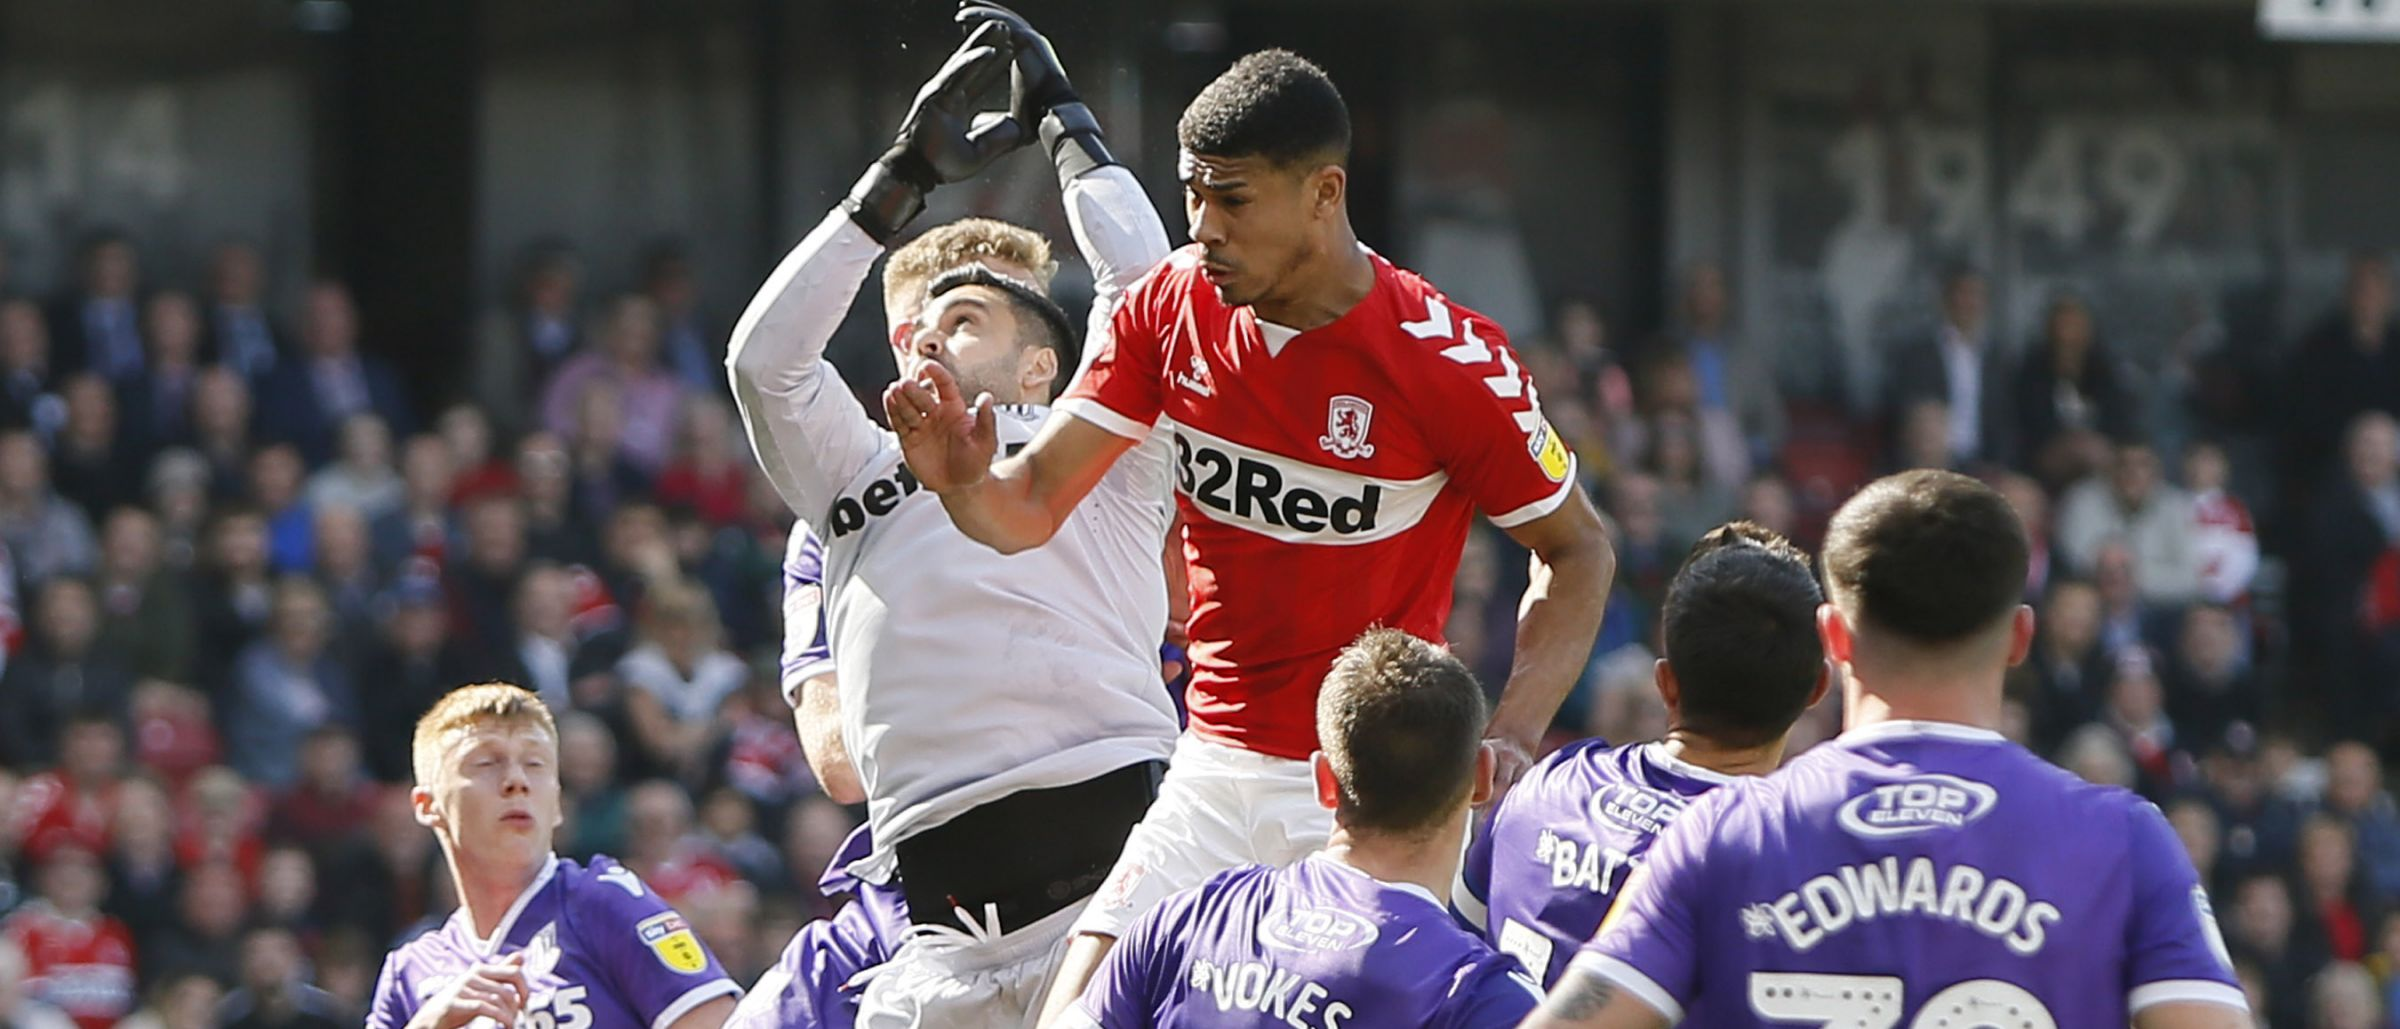 Ashley Fletcher catches some serious air as he forces Stoke's Adam Federici into a spill